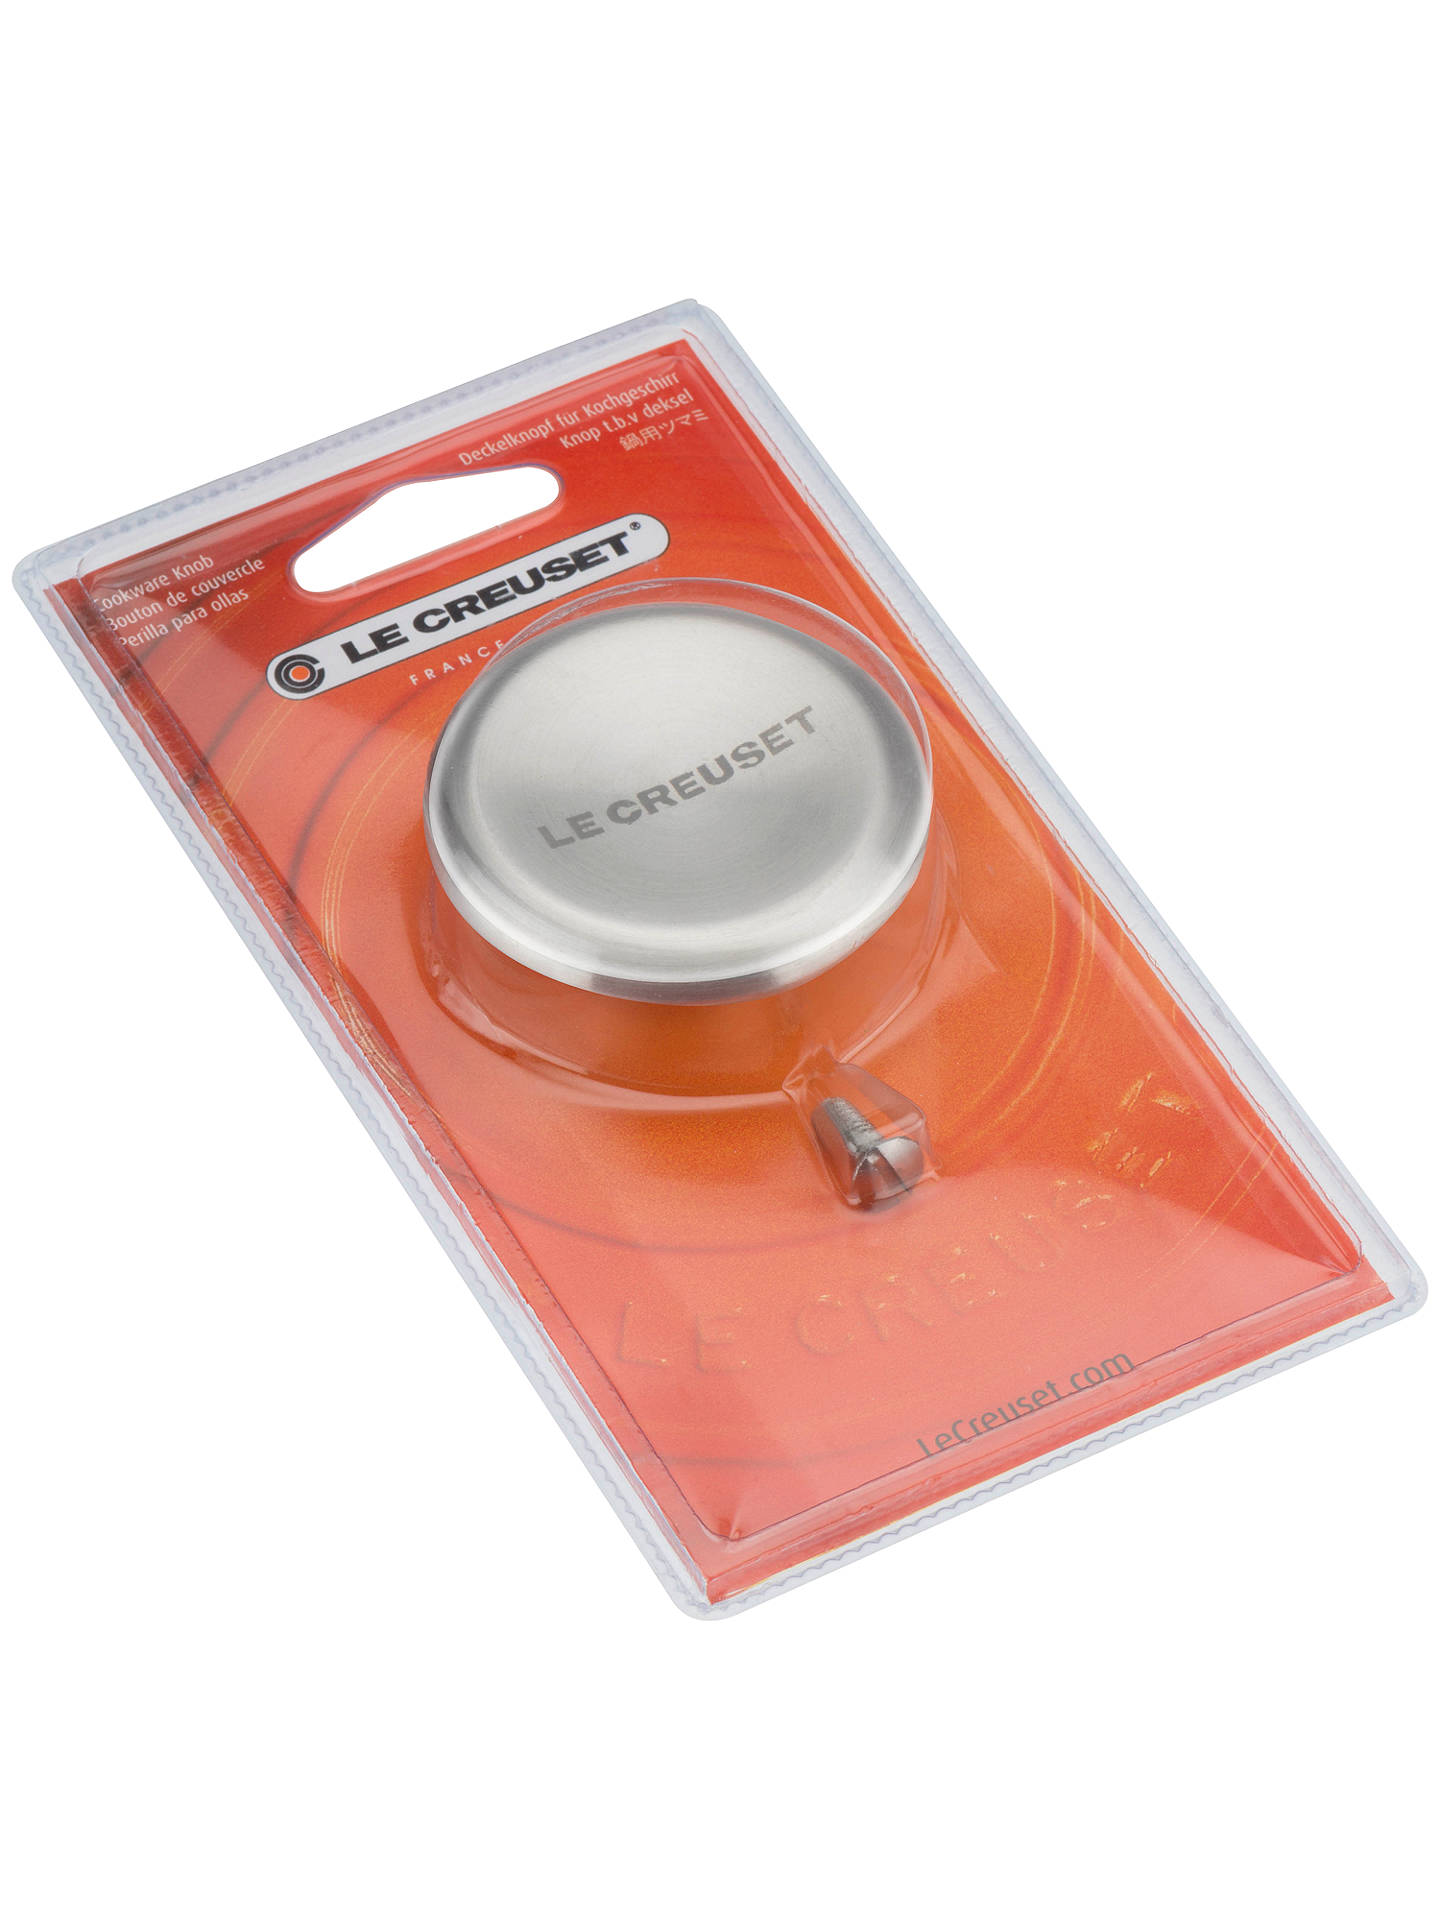 Le Creuset Lifetime Guarantee: Le Creuset Signature Stainless Steel Knob At John Lewis